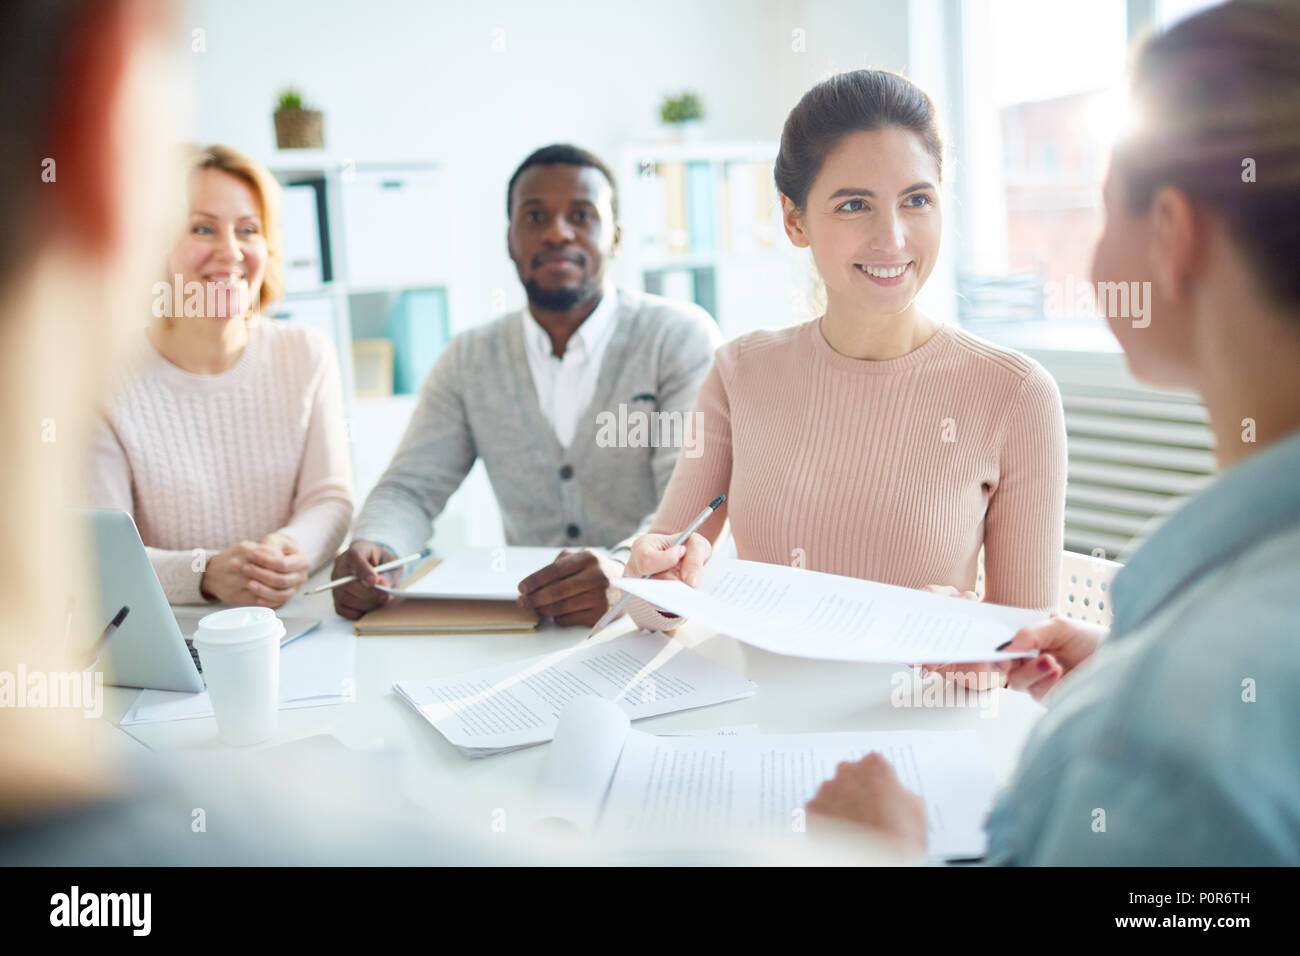 Joyful multi-ethnic team of white collar workers having productive project discussion while gathered together at modern open plan office, lens flare - Stock Image